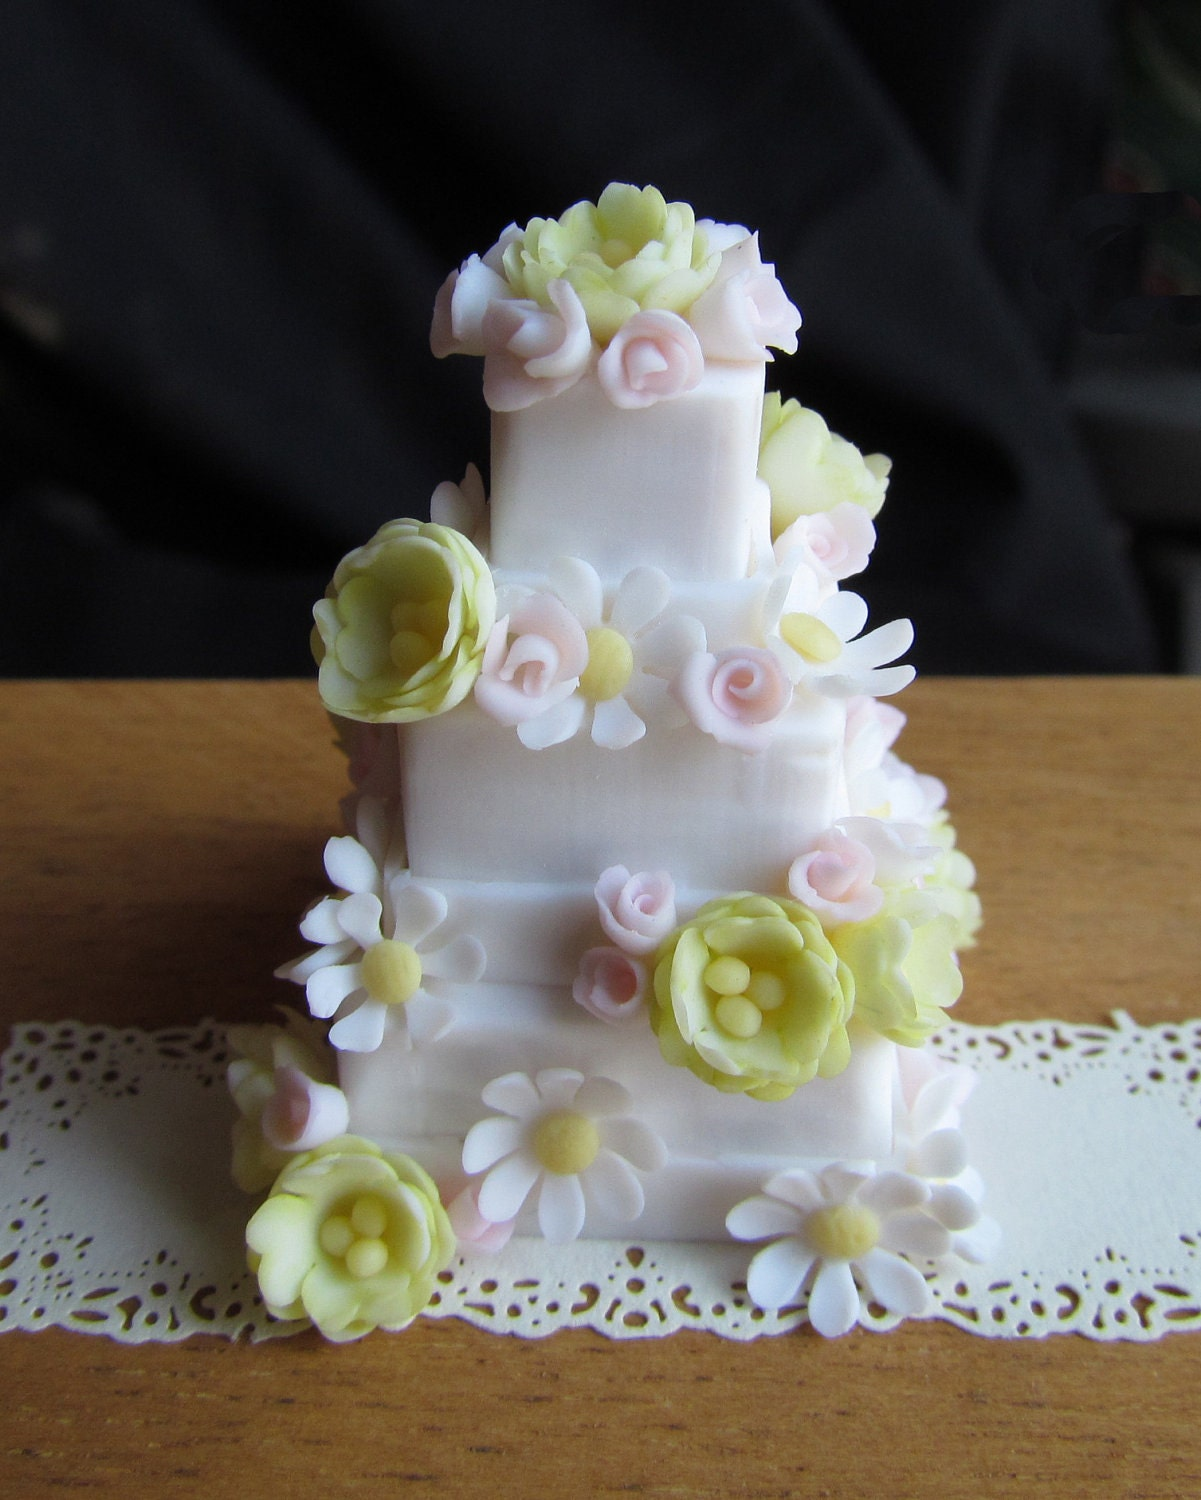 Doll House Cake Images : Learn to Make Miniature Dollhouse Cakes by GoddessofChocolate